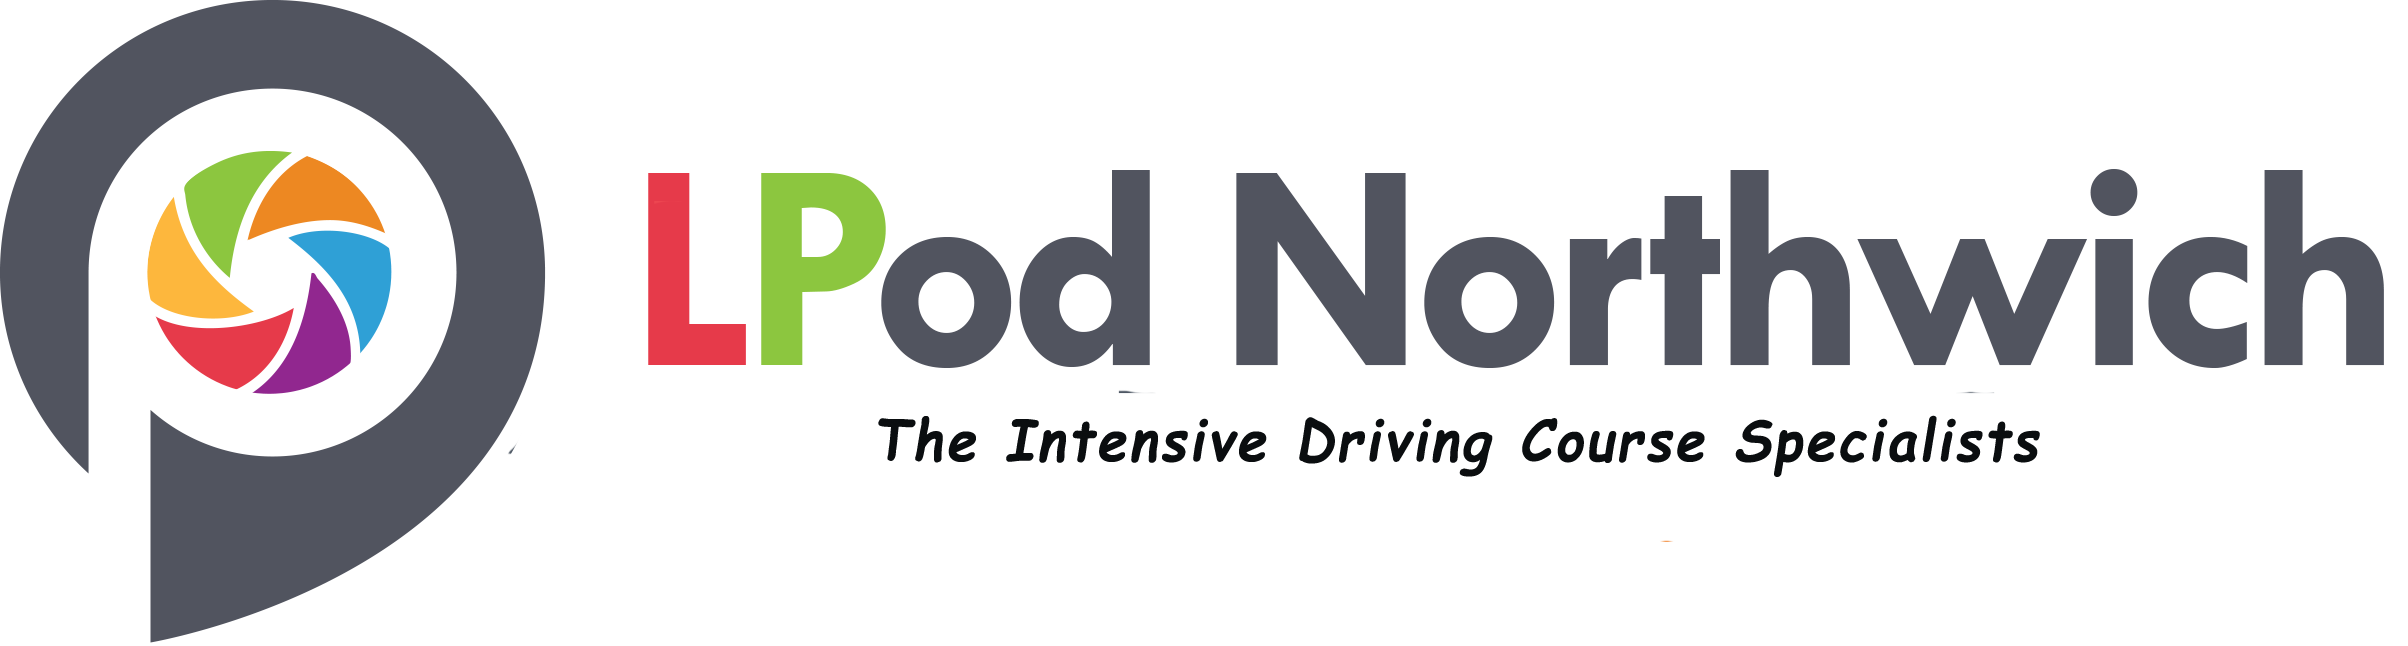 intensive driving courses northwich, one week driving courses, fast pass driving courses northwich